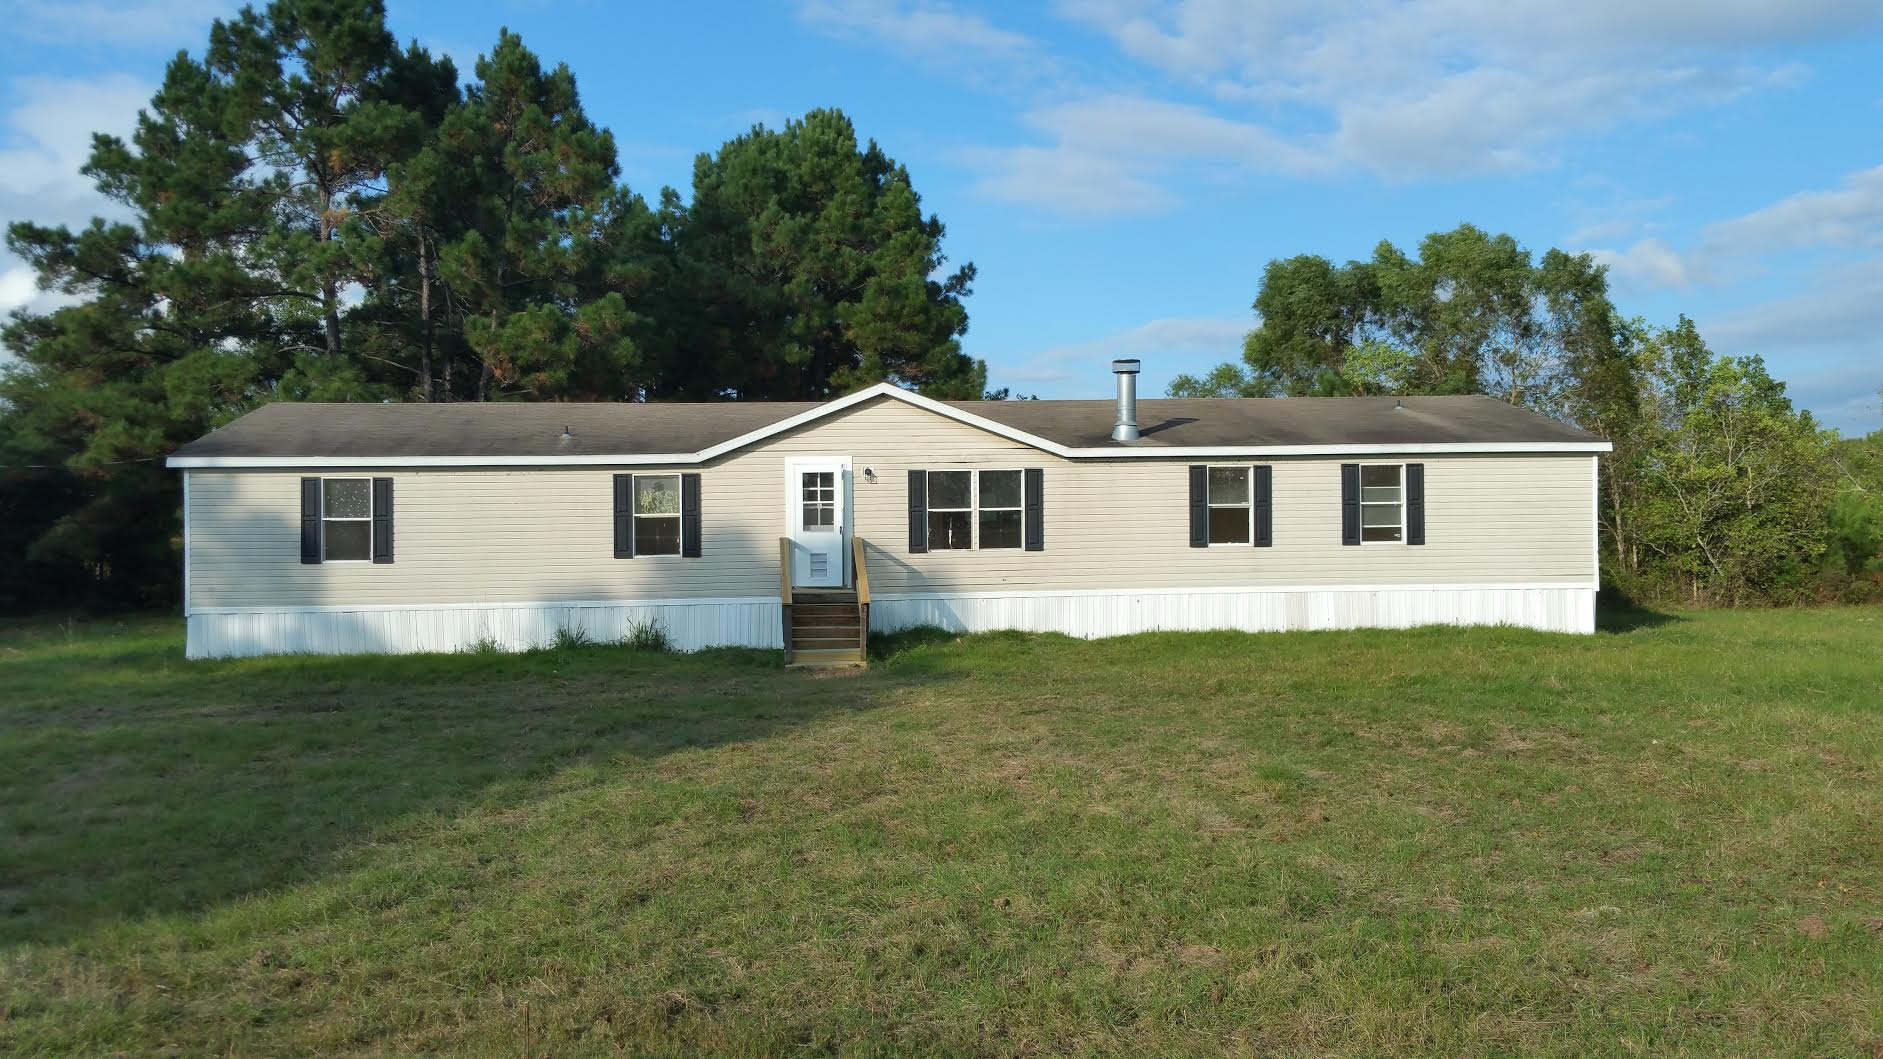 High Texas We Just Finished This Mobile Home Remodel Texas Houston Mobile Home Remodel Show Mobile Home Remodeling Company We Just Finished This Mobile Home Remodel houzz-03 Mobile Home Remodel